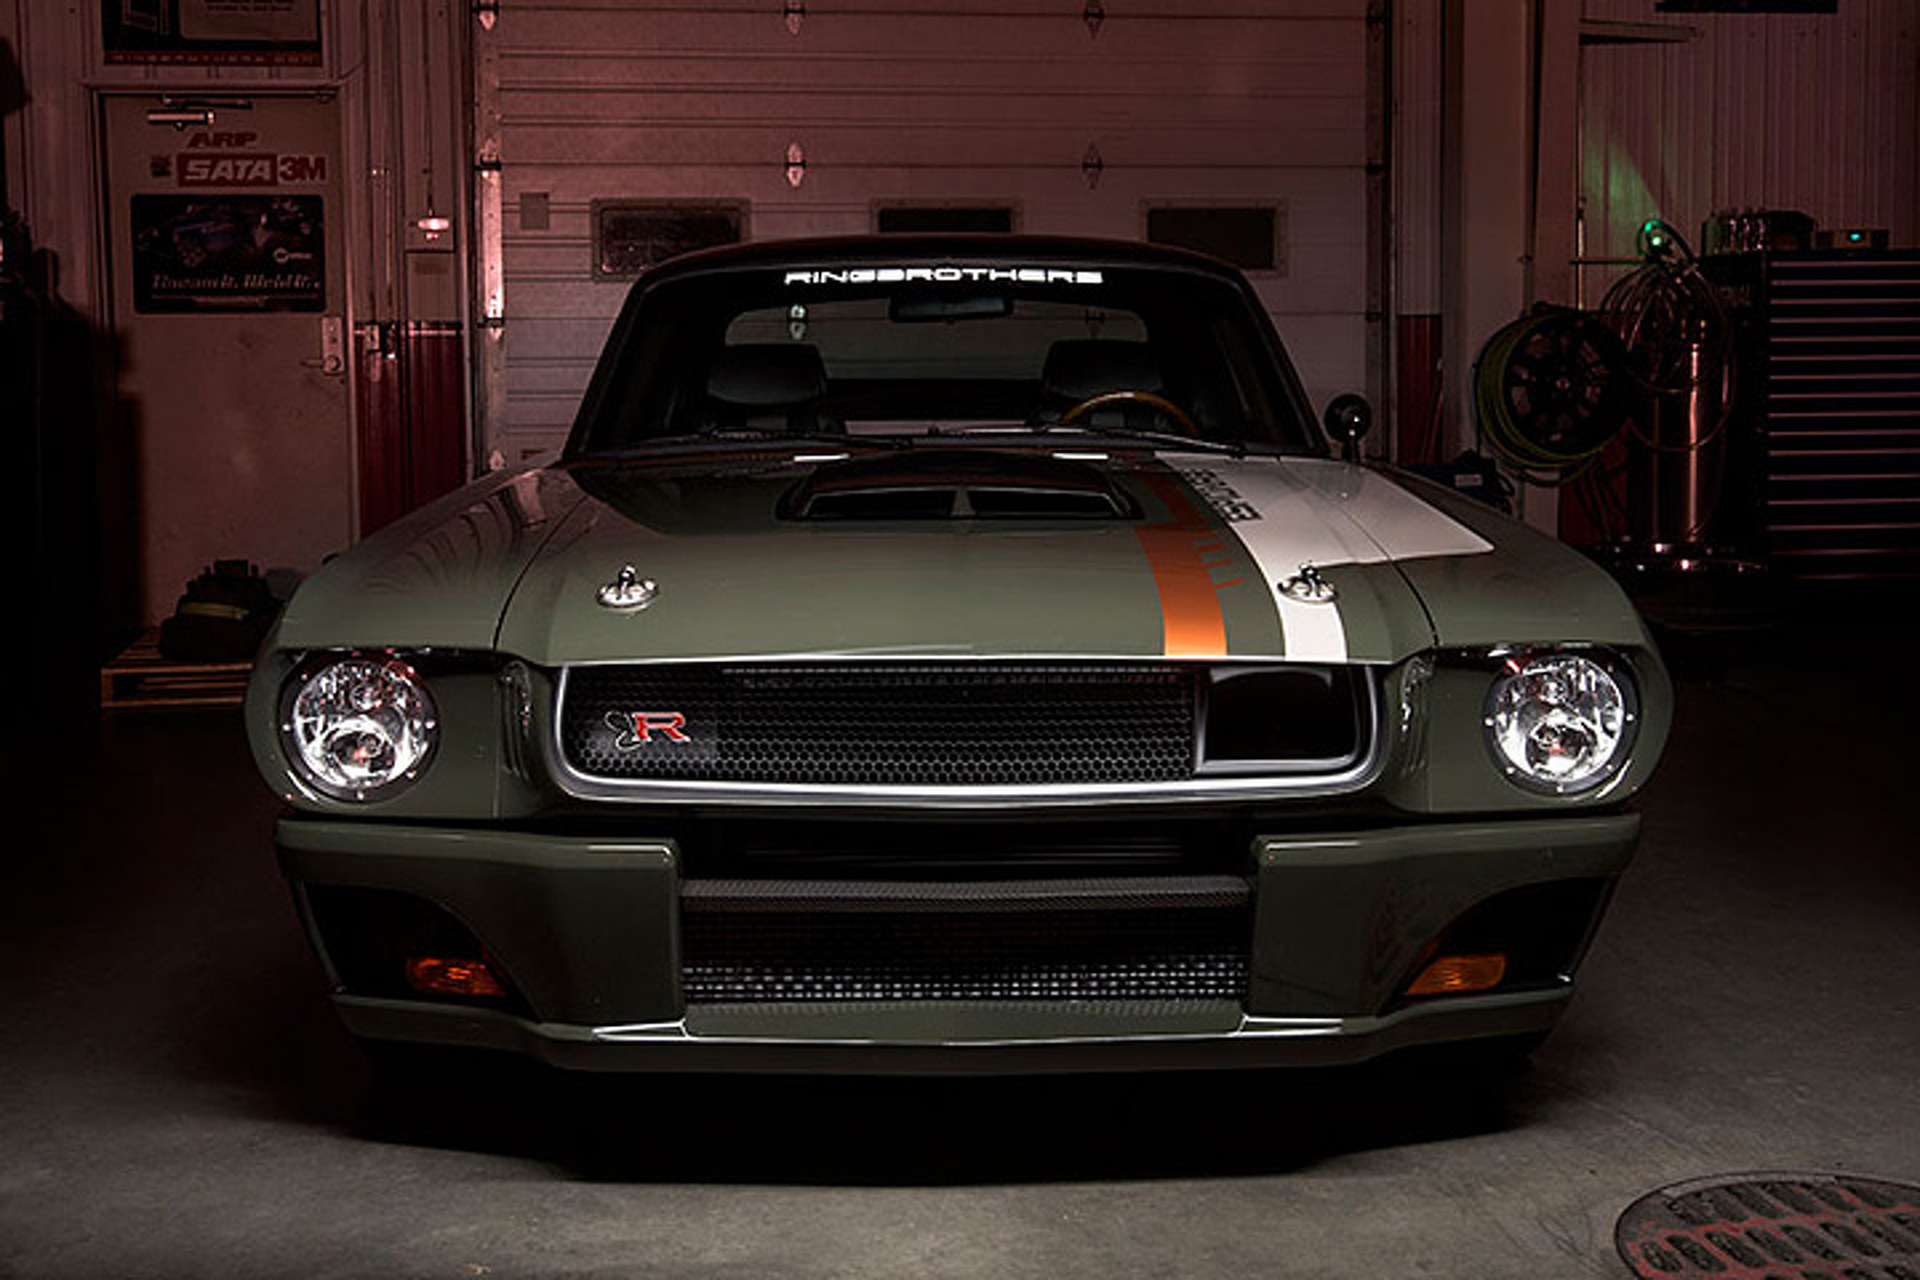 Sick Car Wallpapers 959 Hp Ford Mustang Espionage Makes Other Muscle Cars